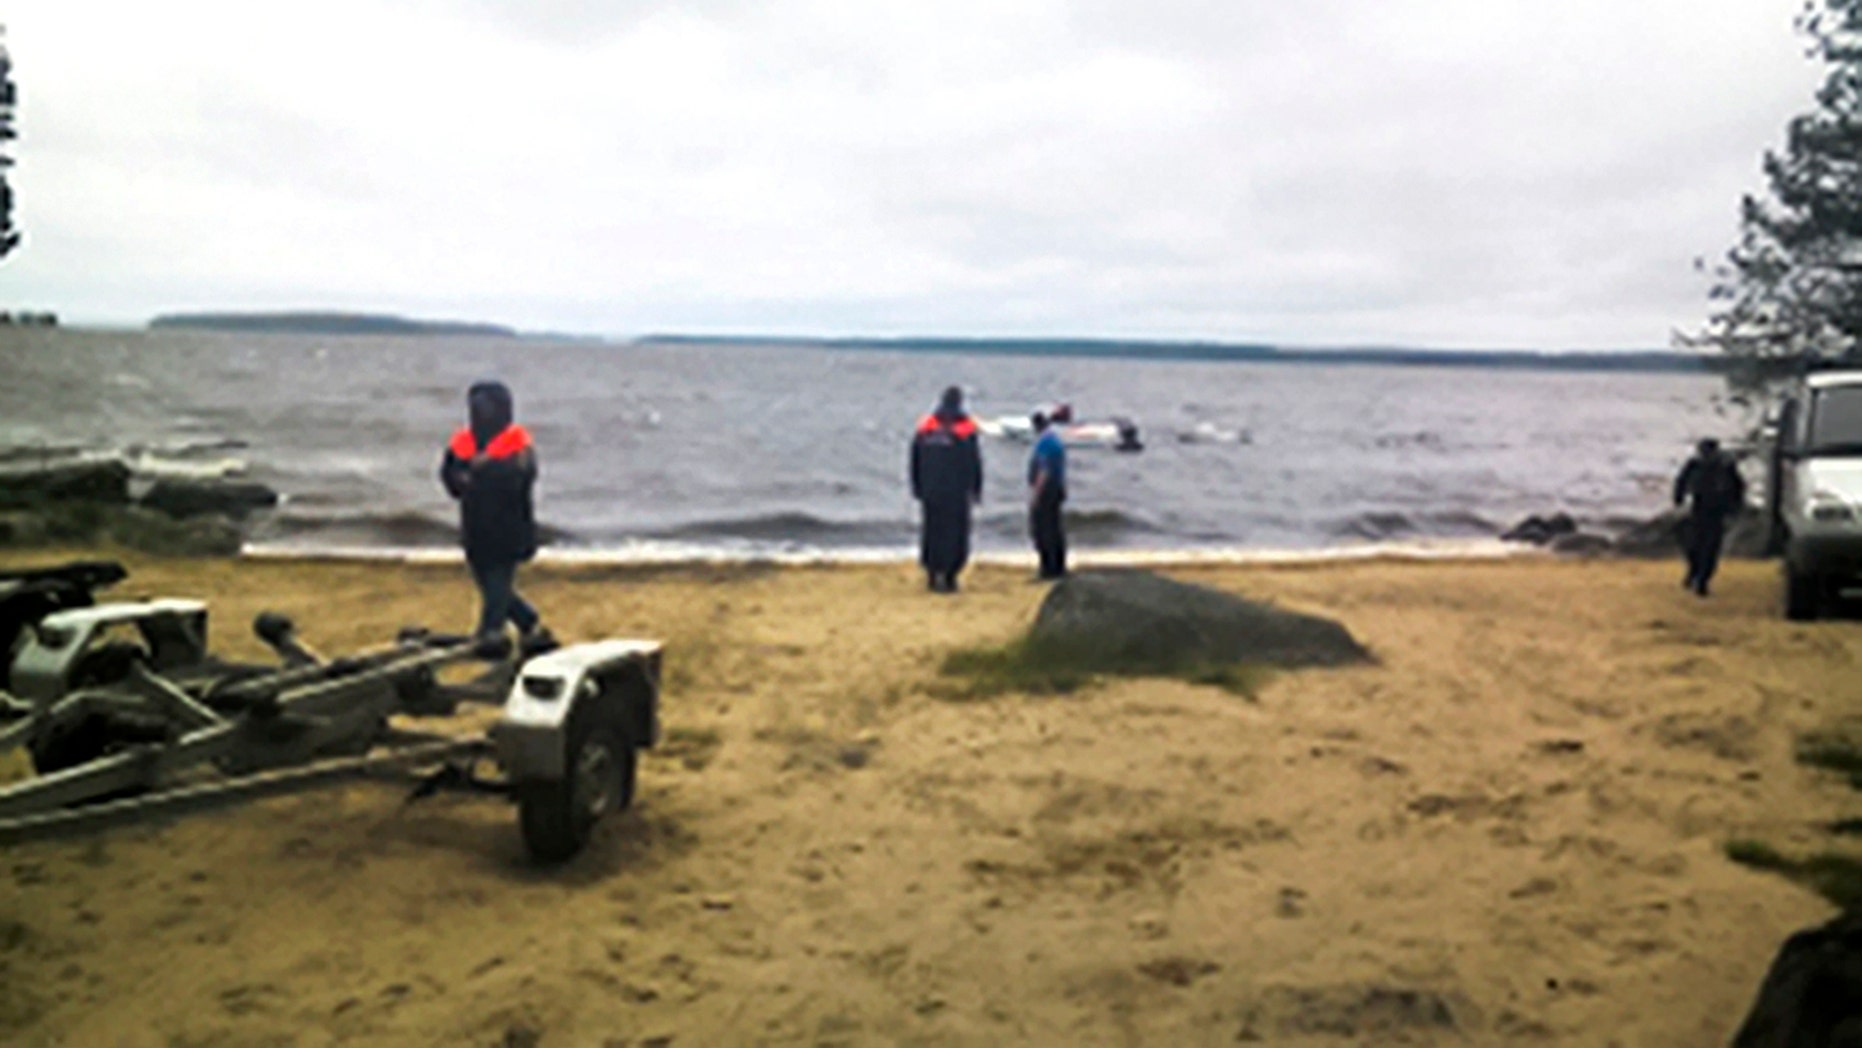 Russian Ministry for Emergency Situations workers stand at the site of an incident at a lake in the Karelia region.